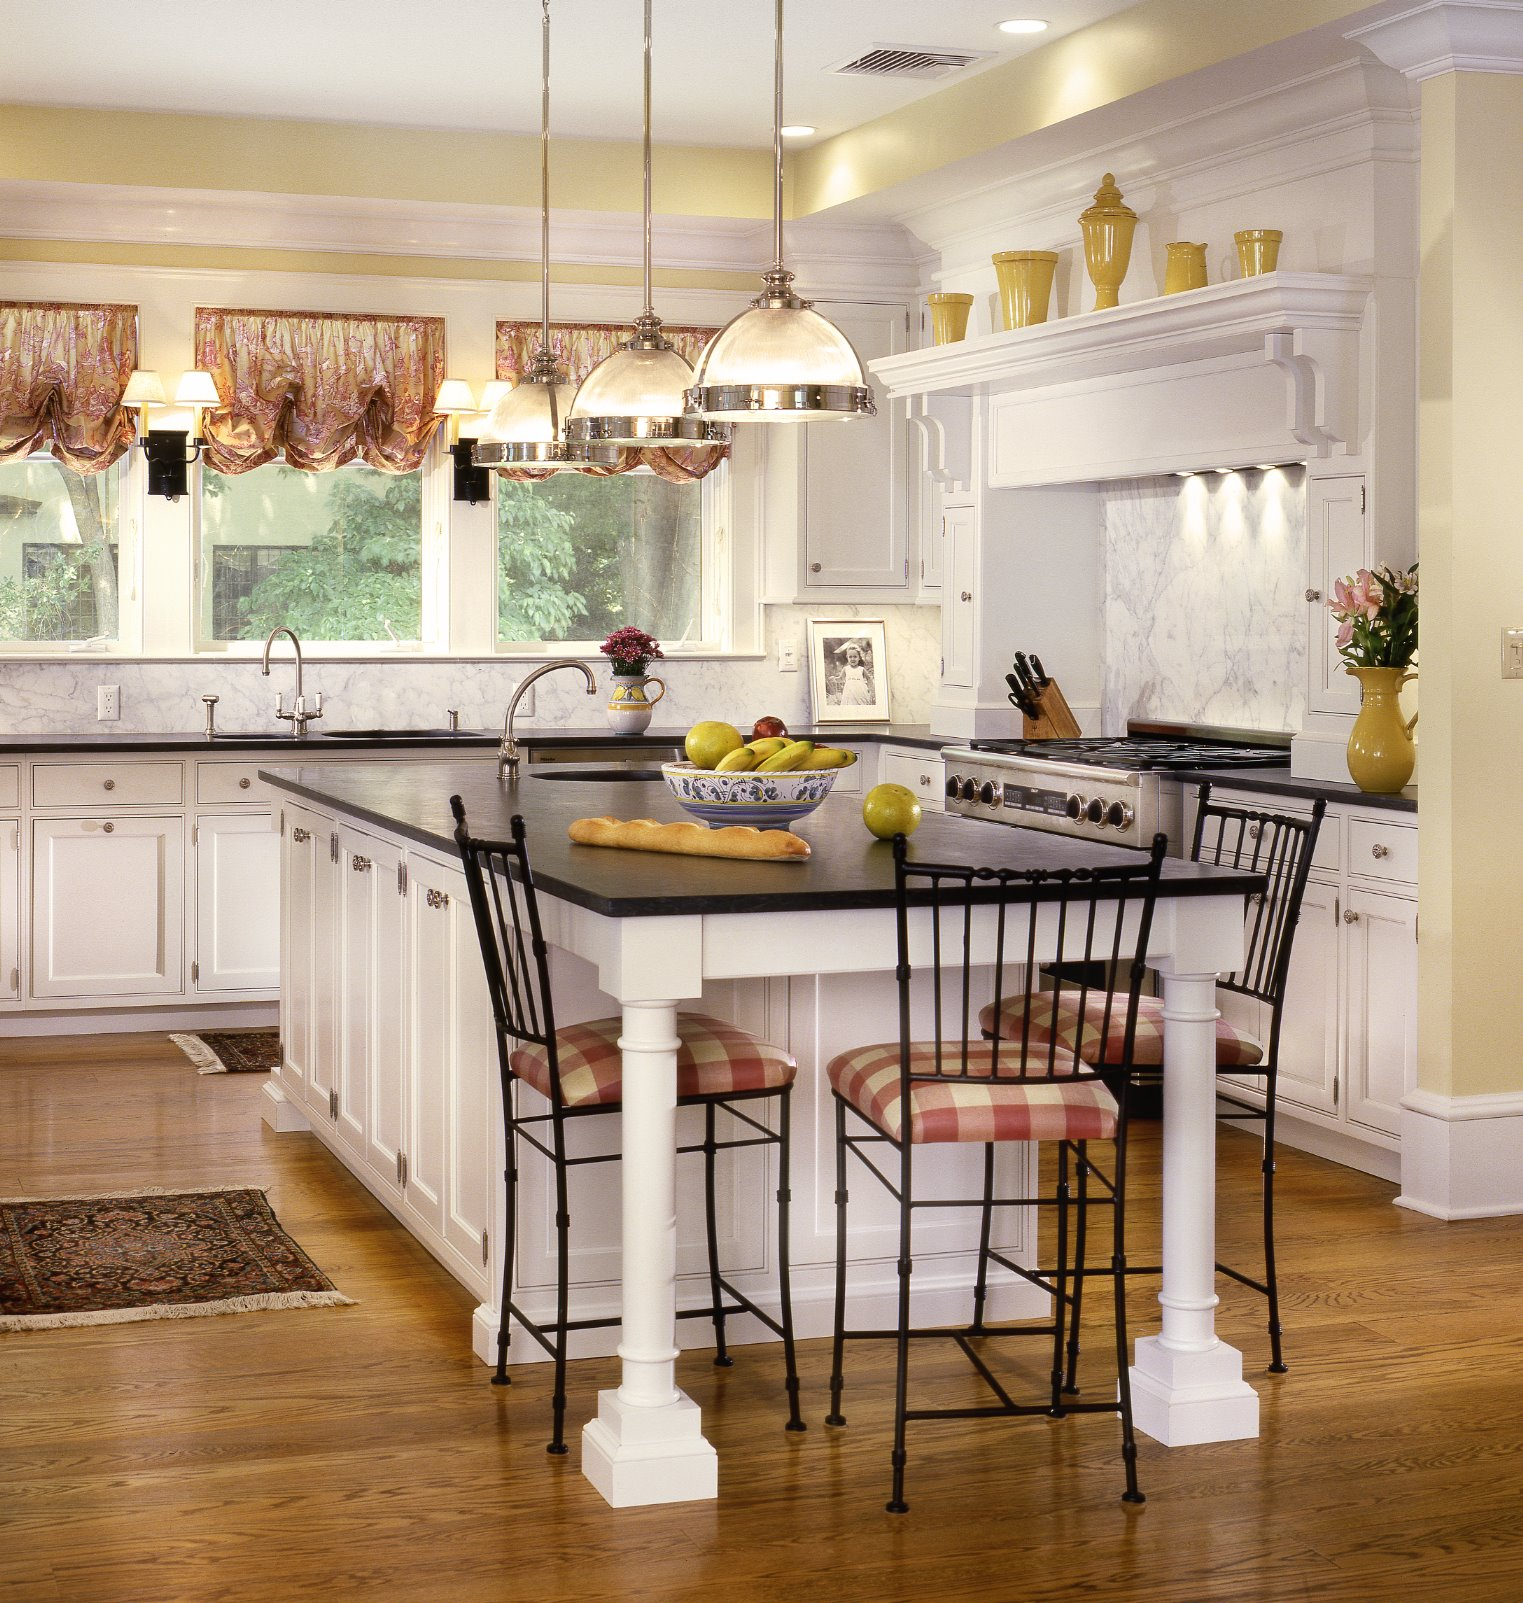 Traditional Kitchen Lighting Ideas Pictures: Craft-Maid Handmade Custom